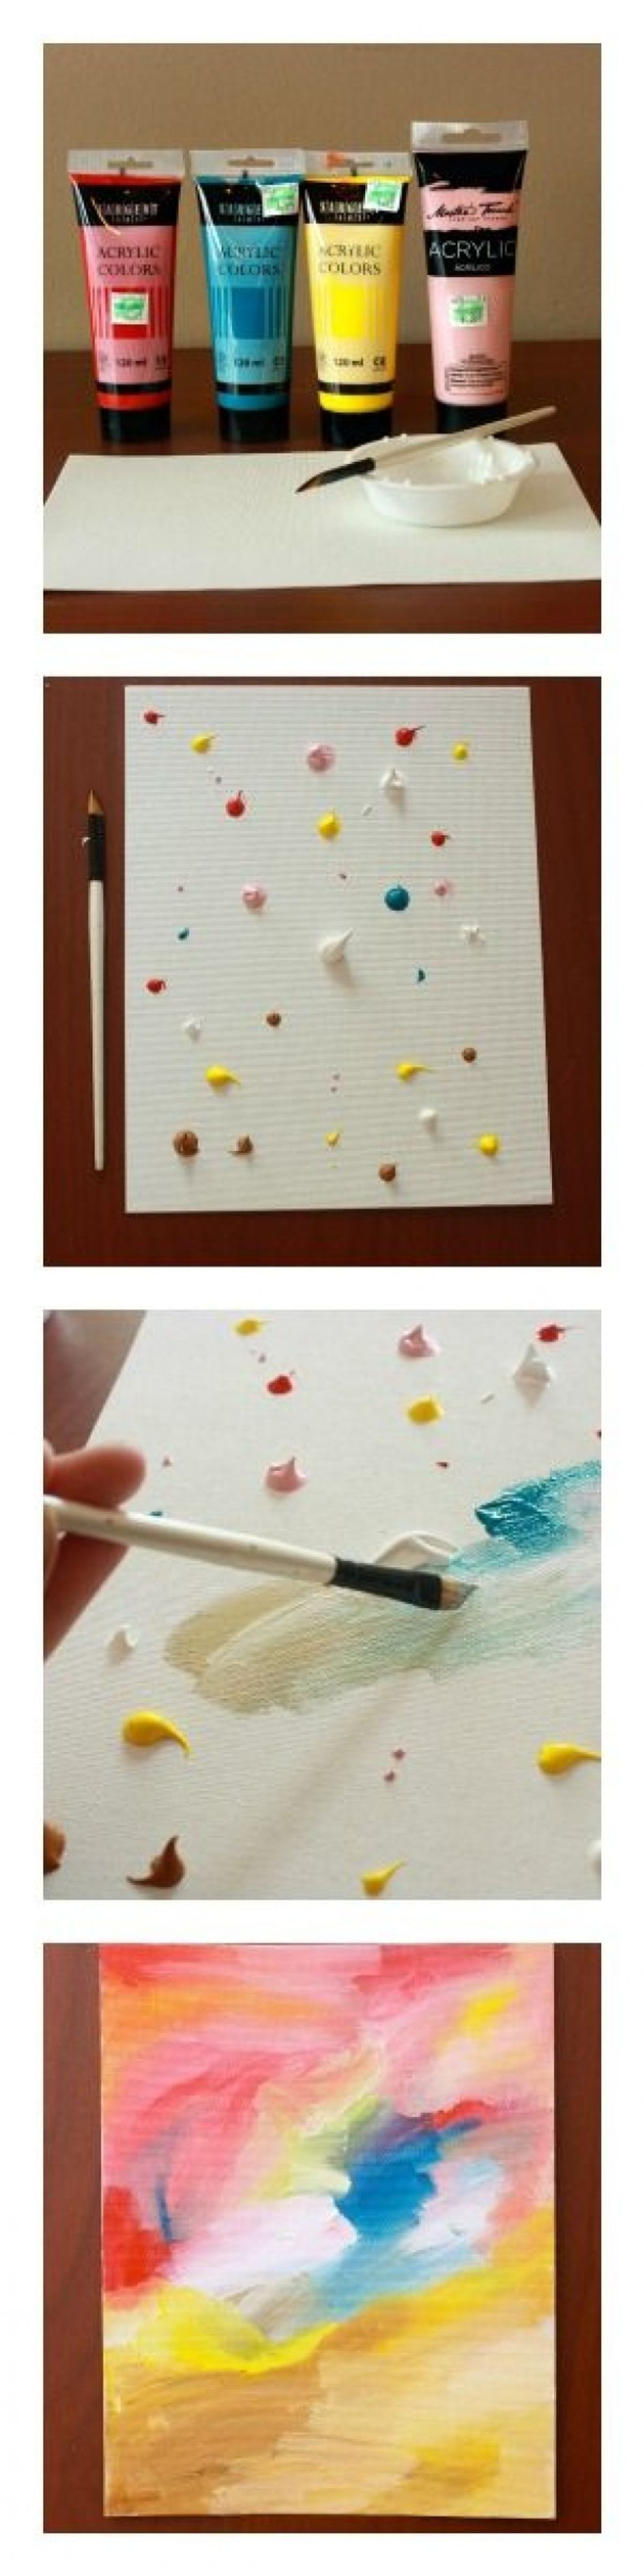 The 10 Easiest Crafts for Your Little